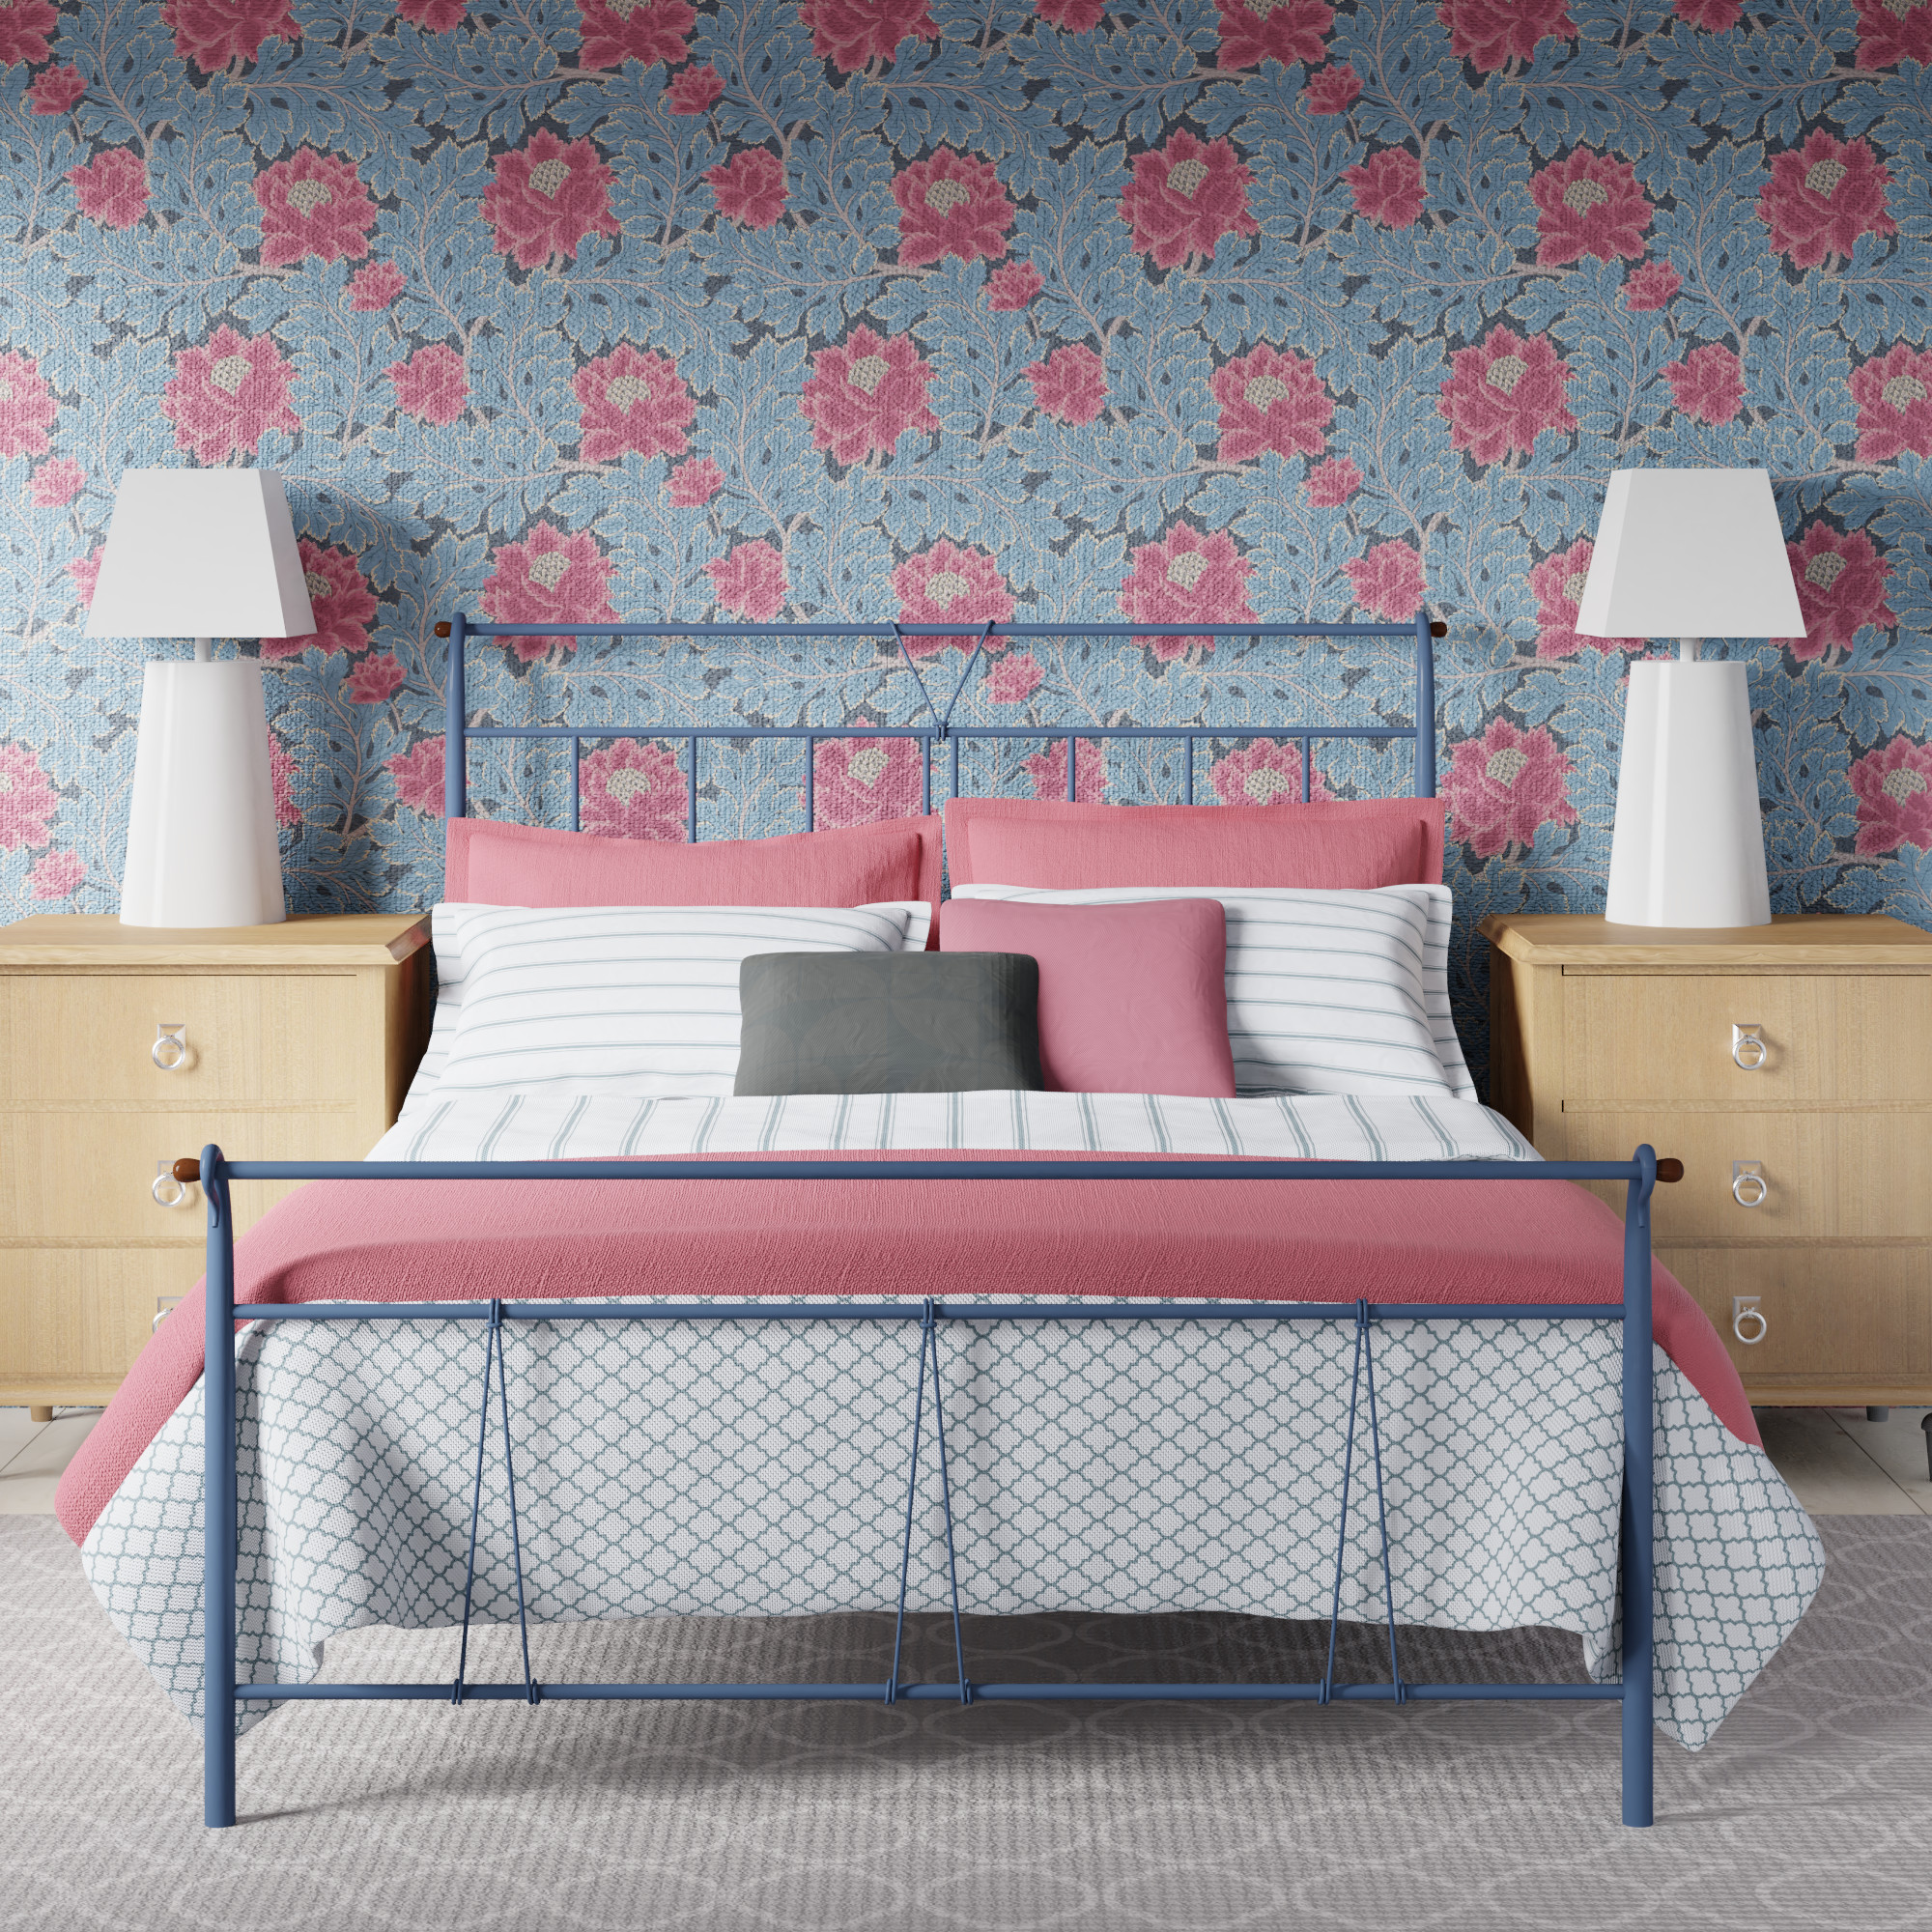 Pellini iron bed in a blue grey paint